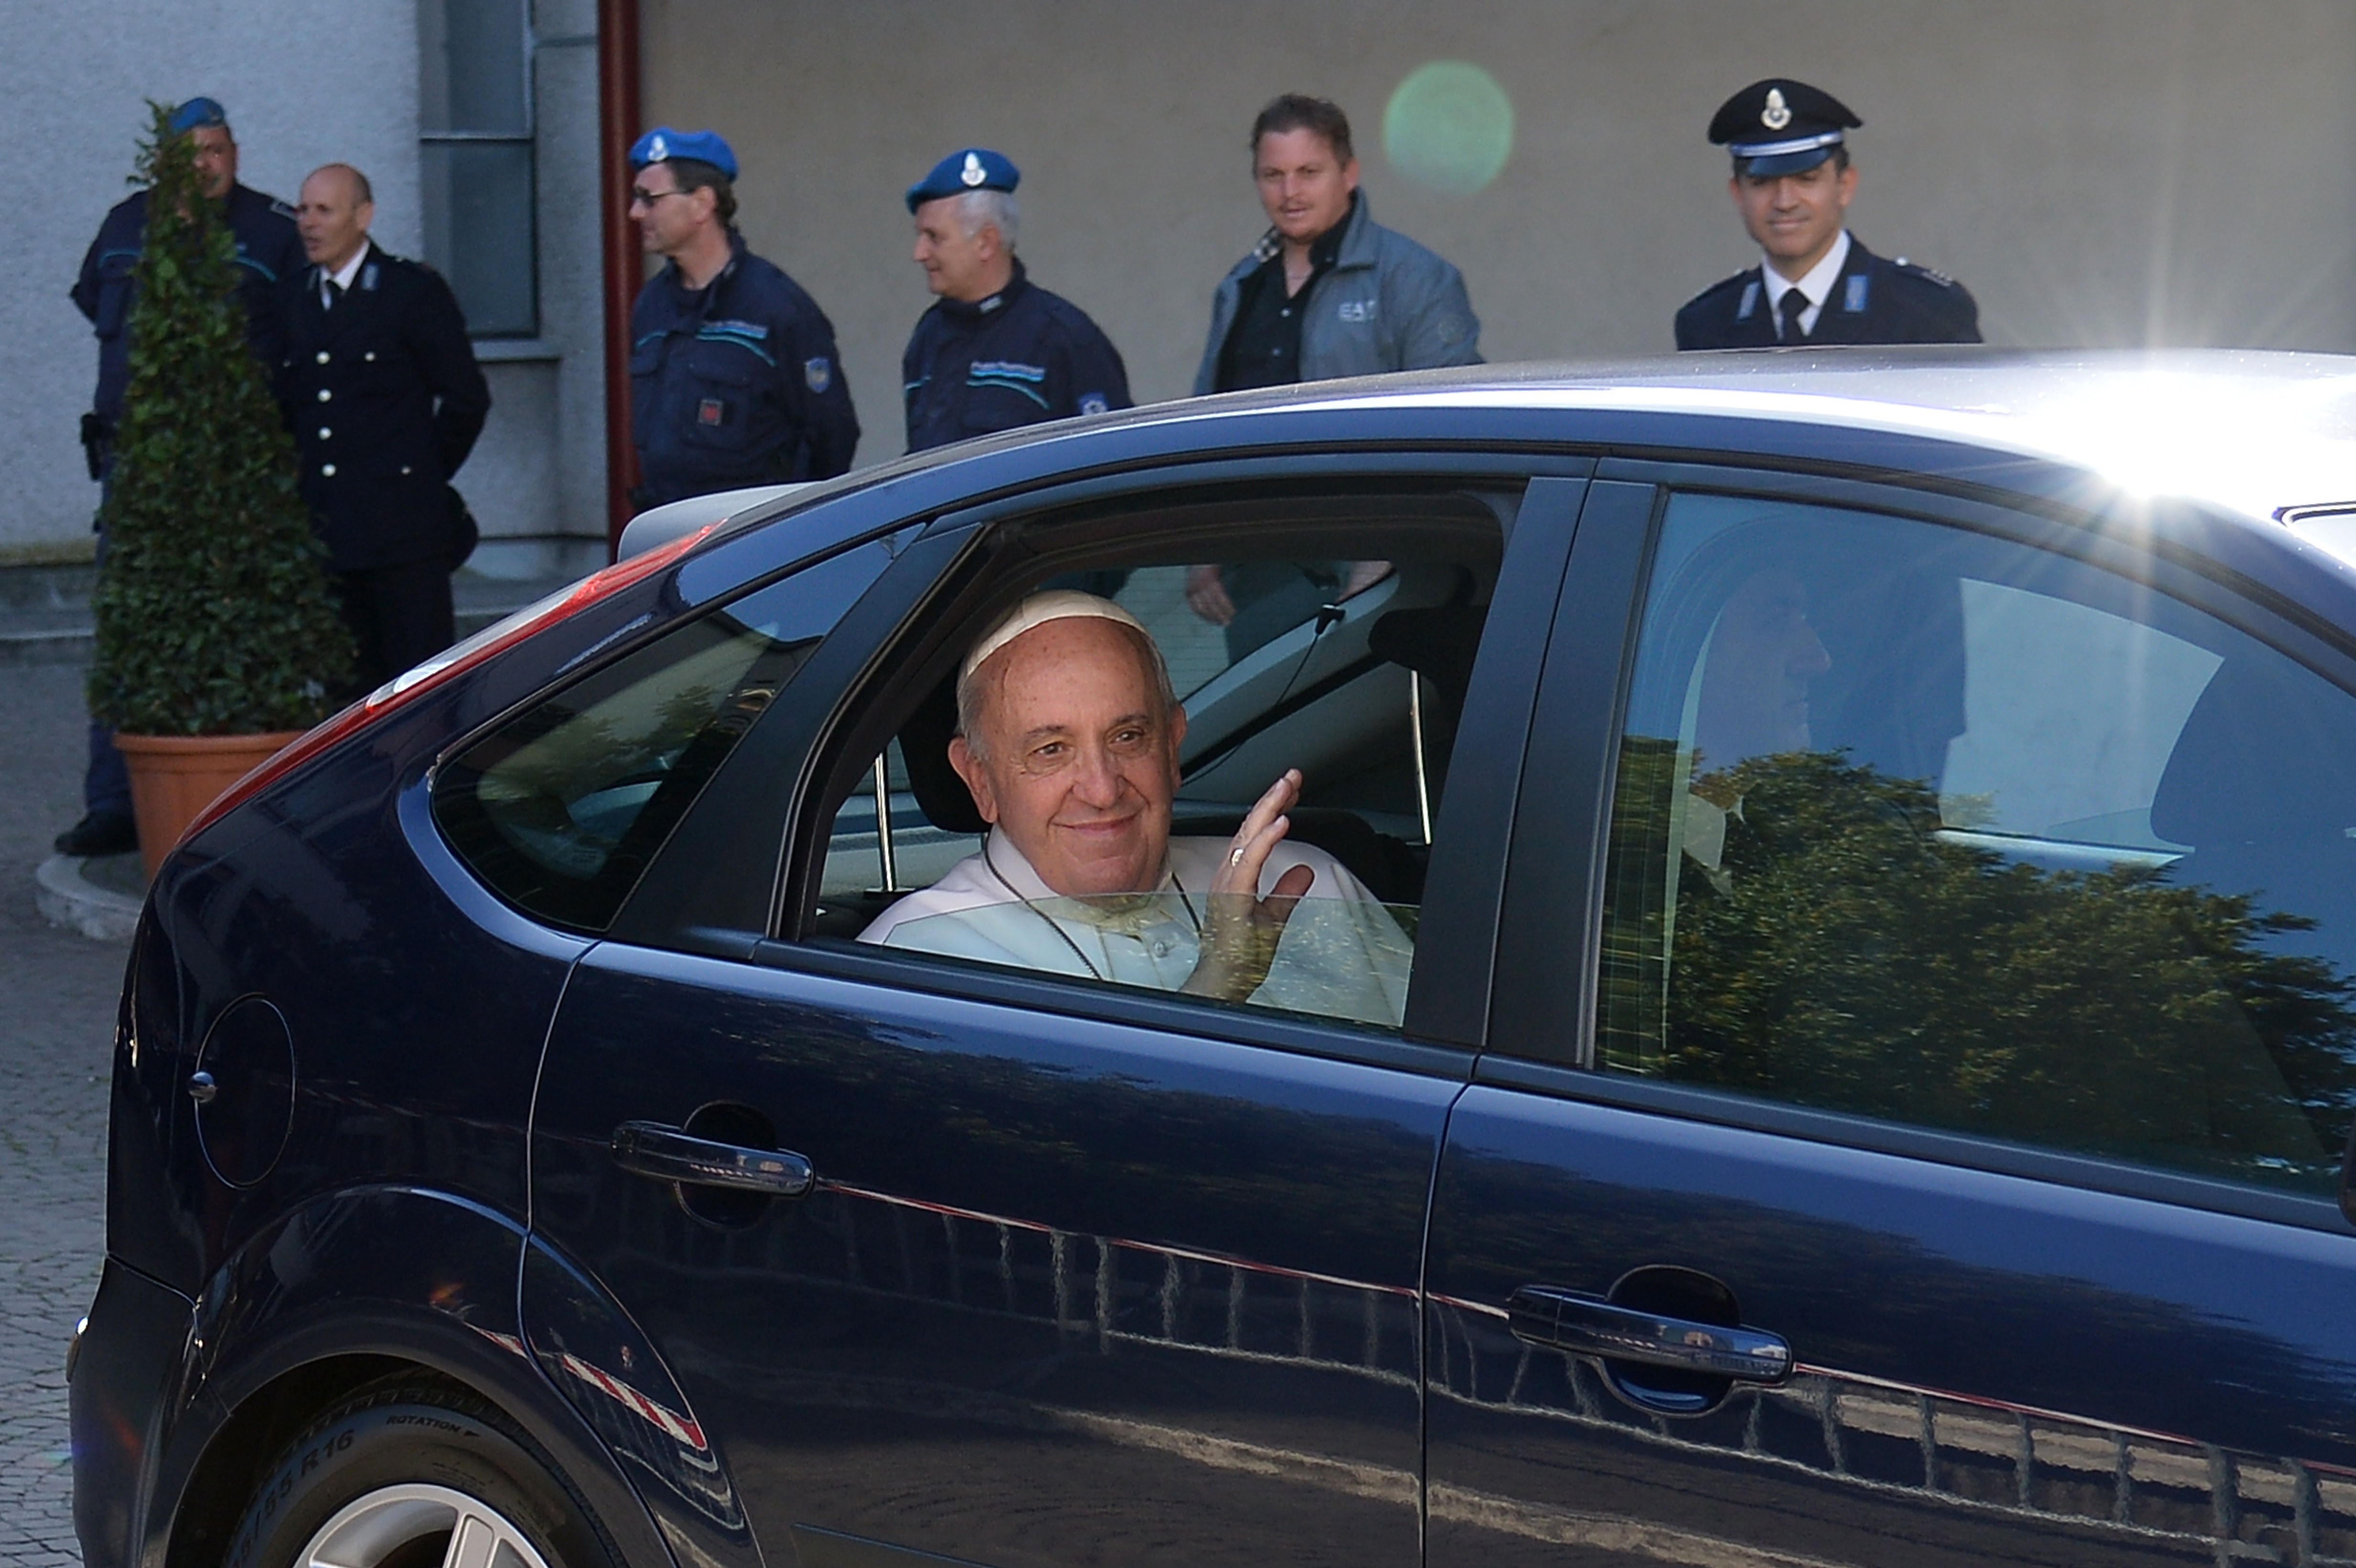 Pope Francis arrives by car at Rebibbia prison, where he washed the feet of prisoners in Rome, Italy on April 2, 2014.